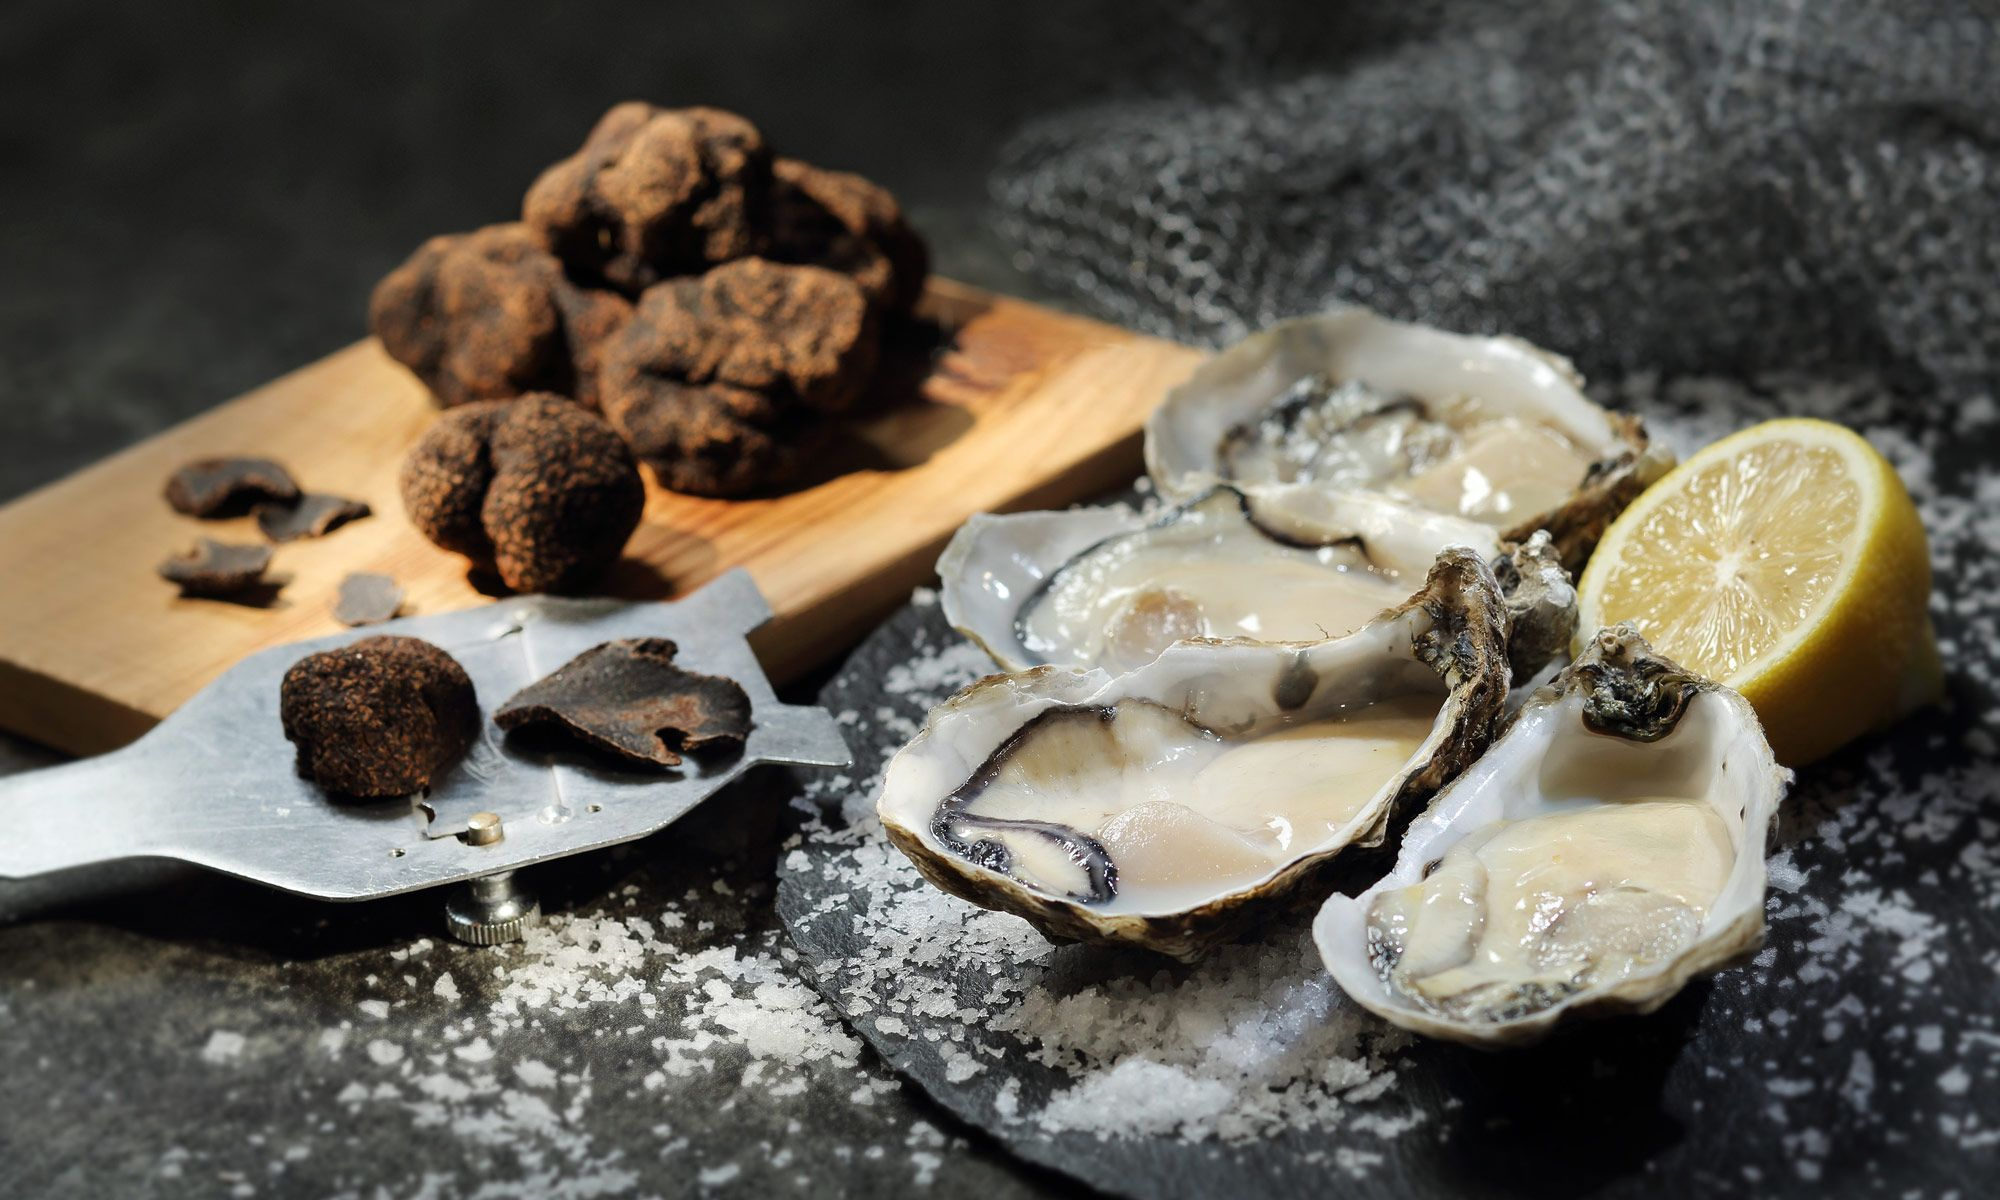 Black Truffle And Oyster Buffet At Cafe On M